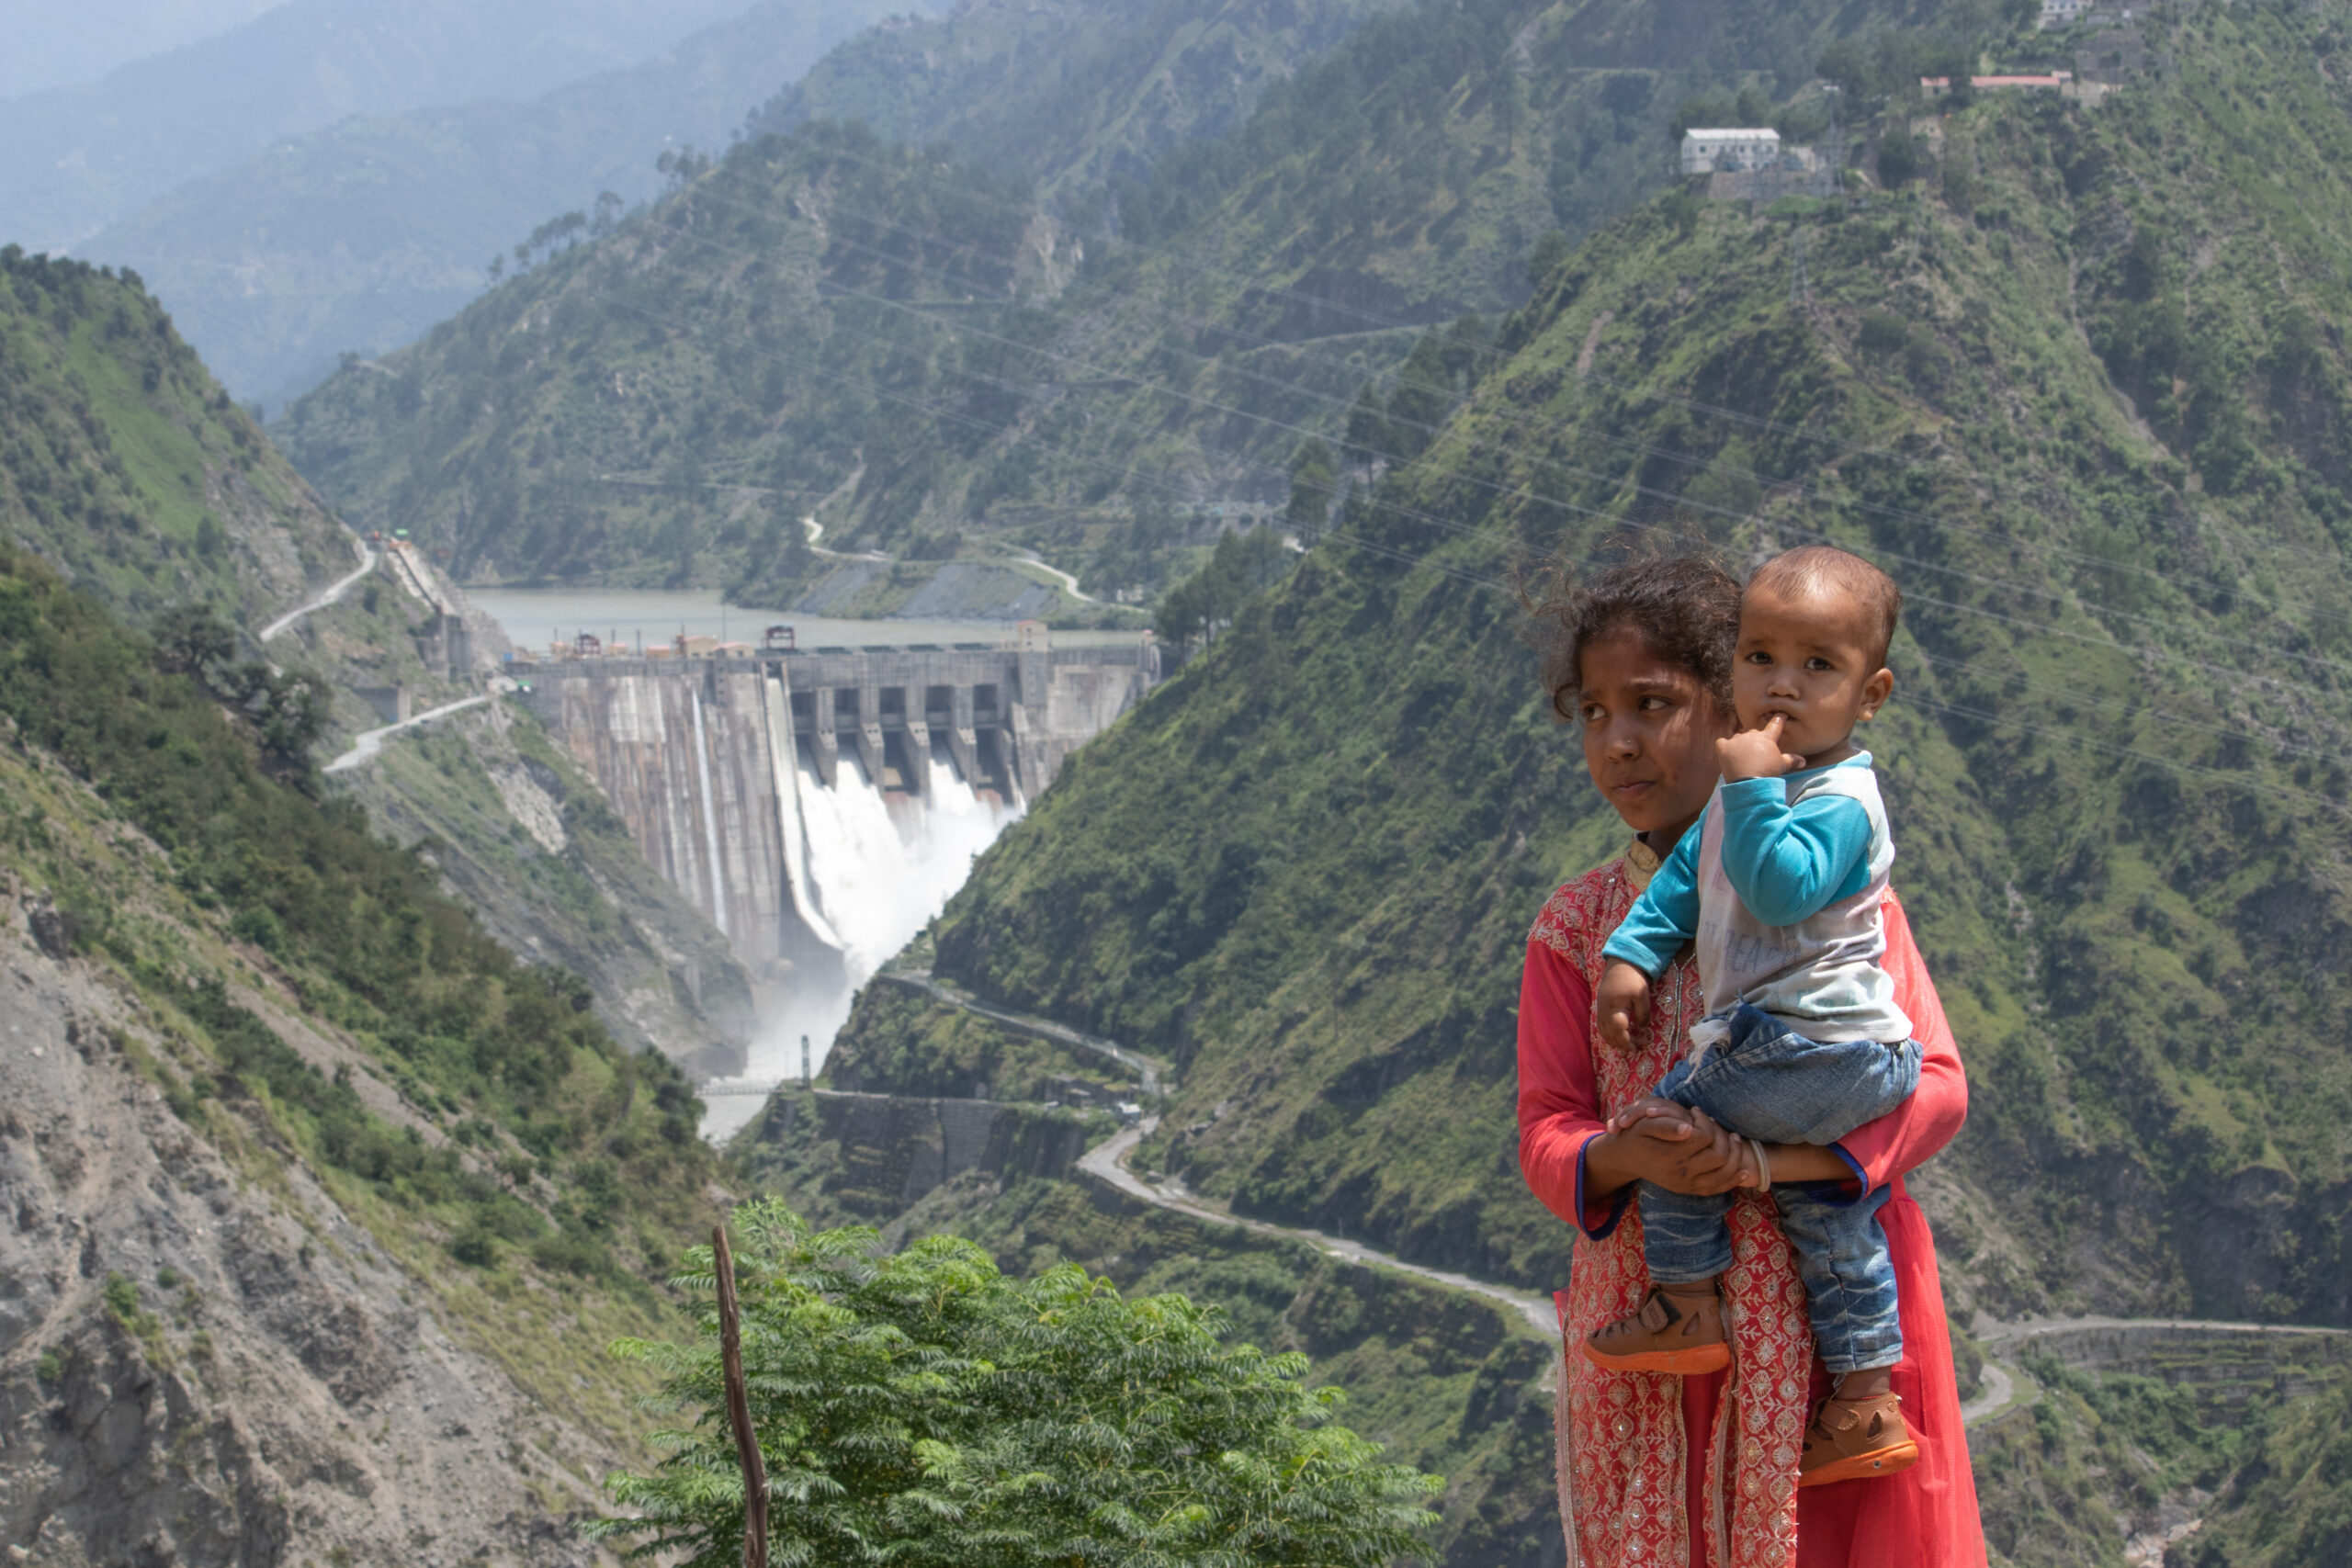 Construction of new dams in Kashmir raises human, environmental cost concerns